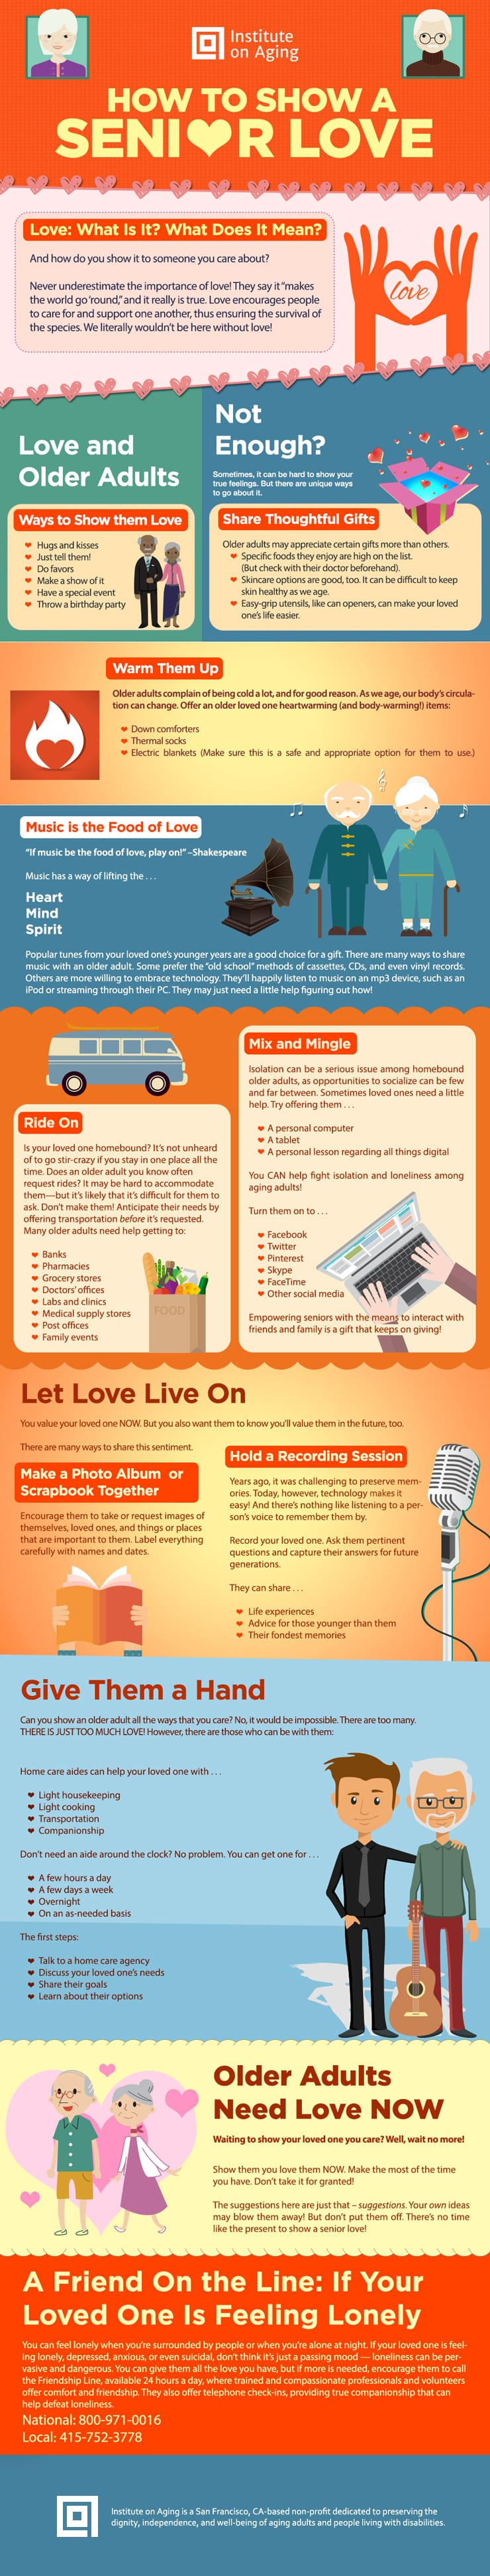 How to Show a Senior Love Infographic